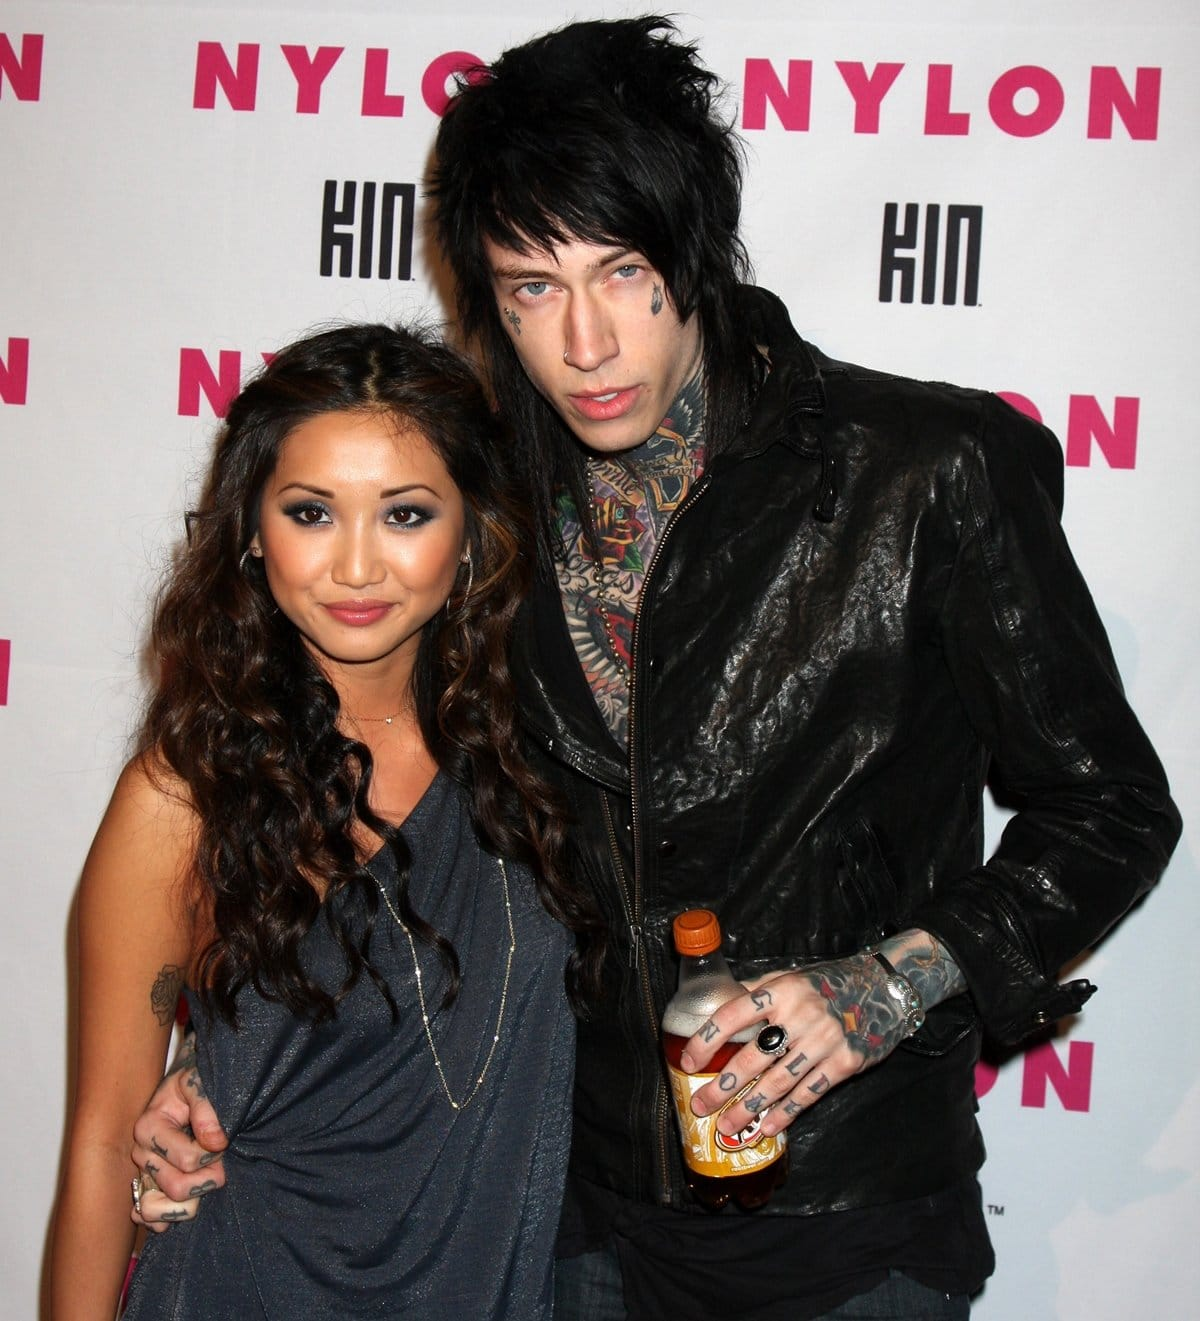 Brenda Song dated Miley Cyrus's brother Trace Cyrus for seven years